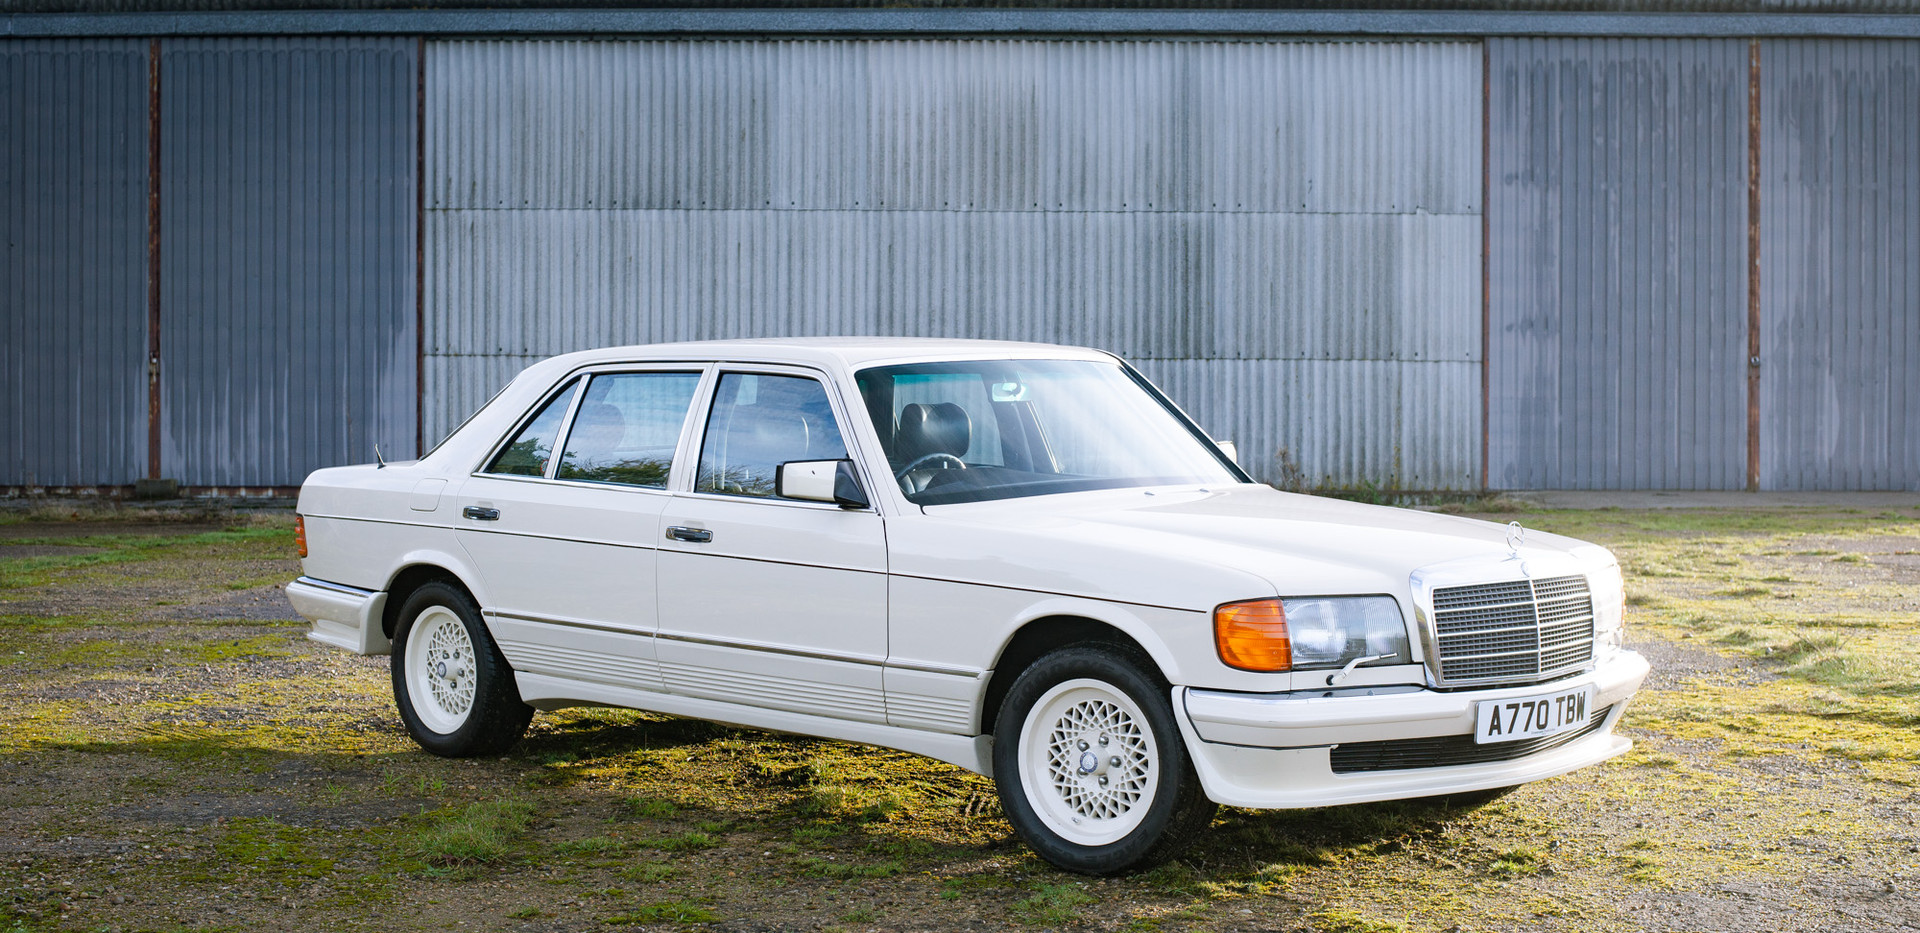 W126 Cream 500SEL for sale uk.jpg